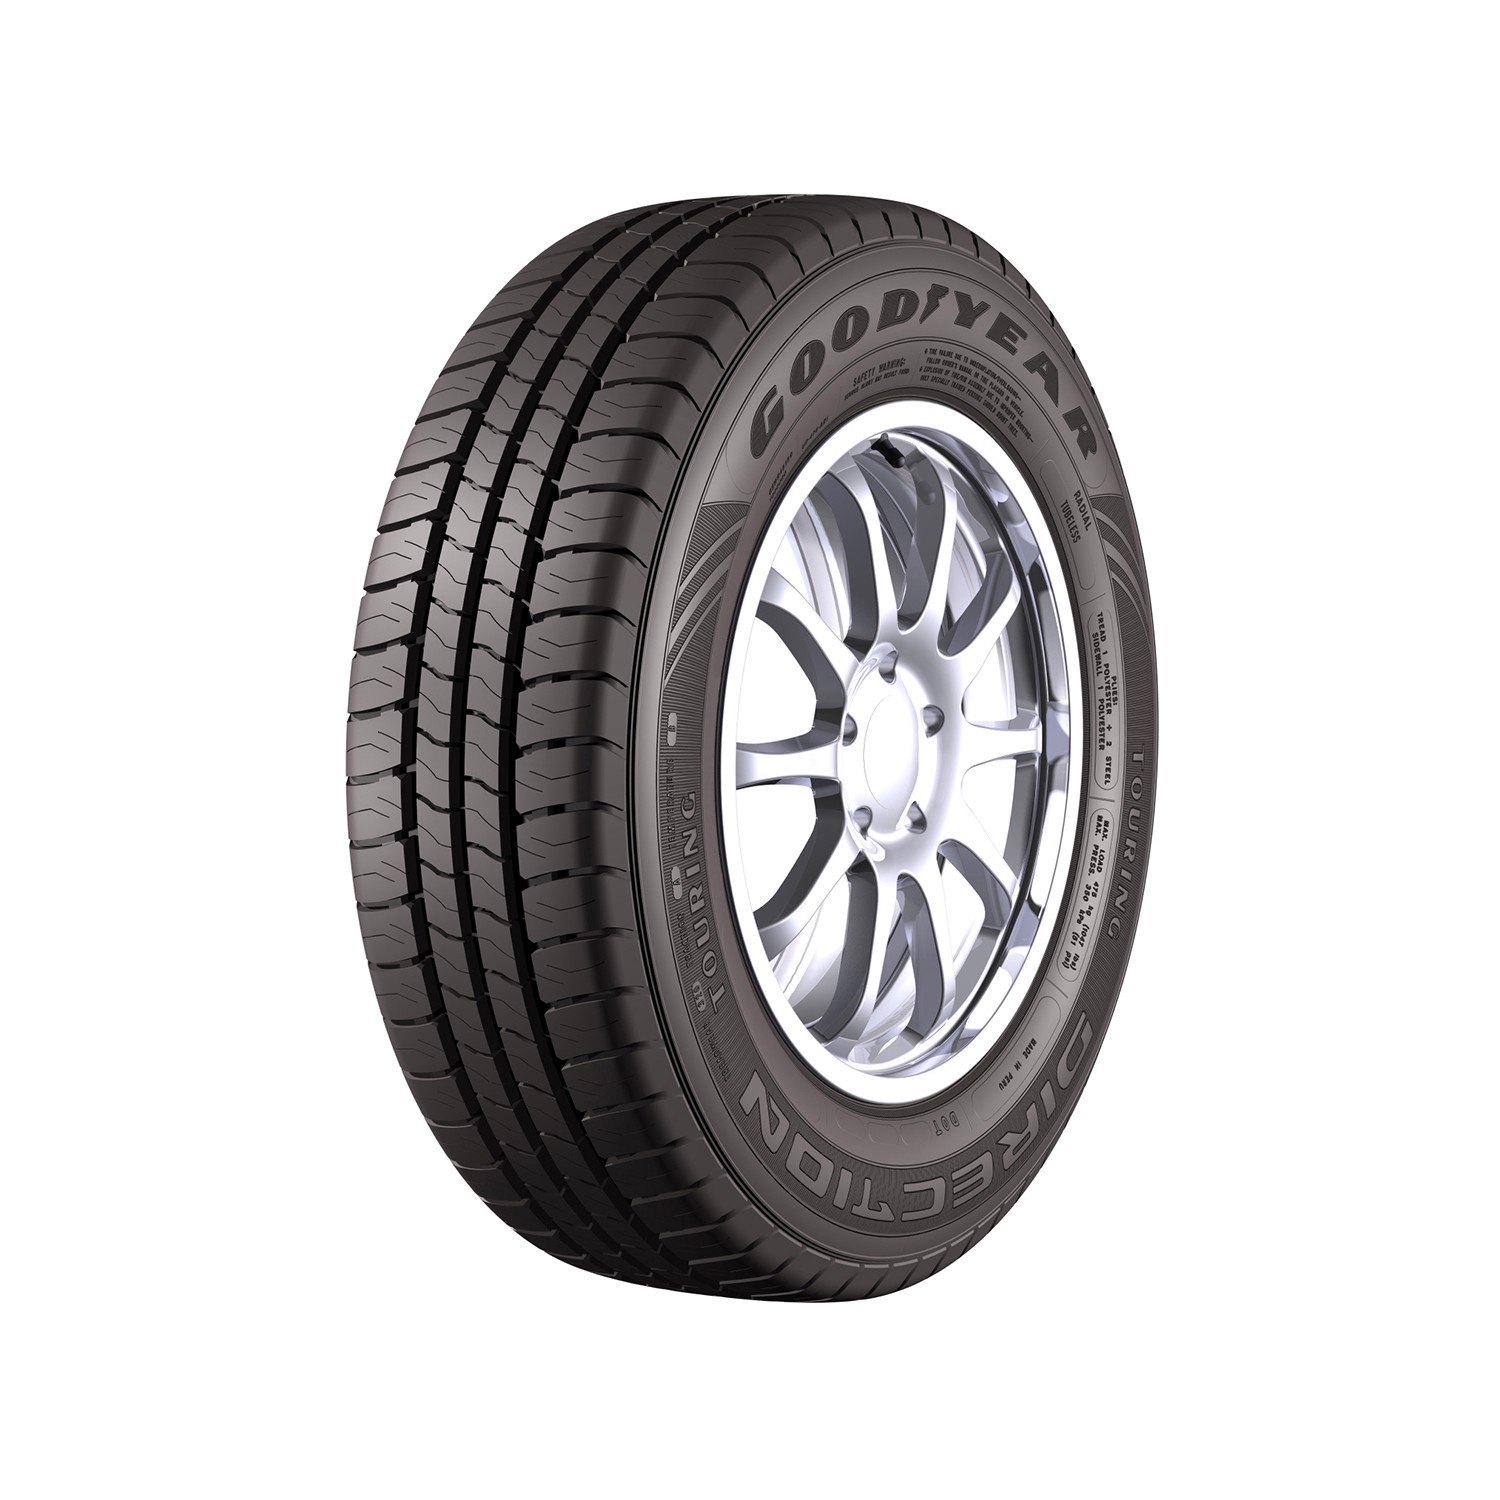 Pneu Goodyear Aro 14 17565R14 82T Direction Touring